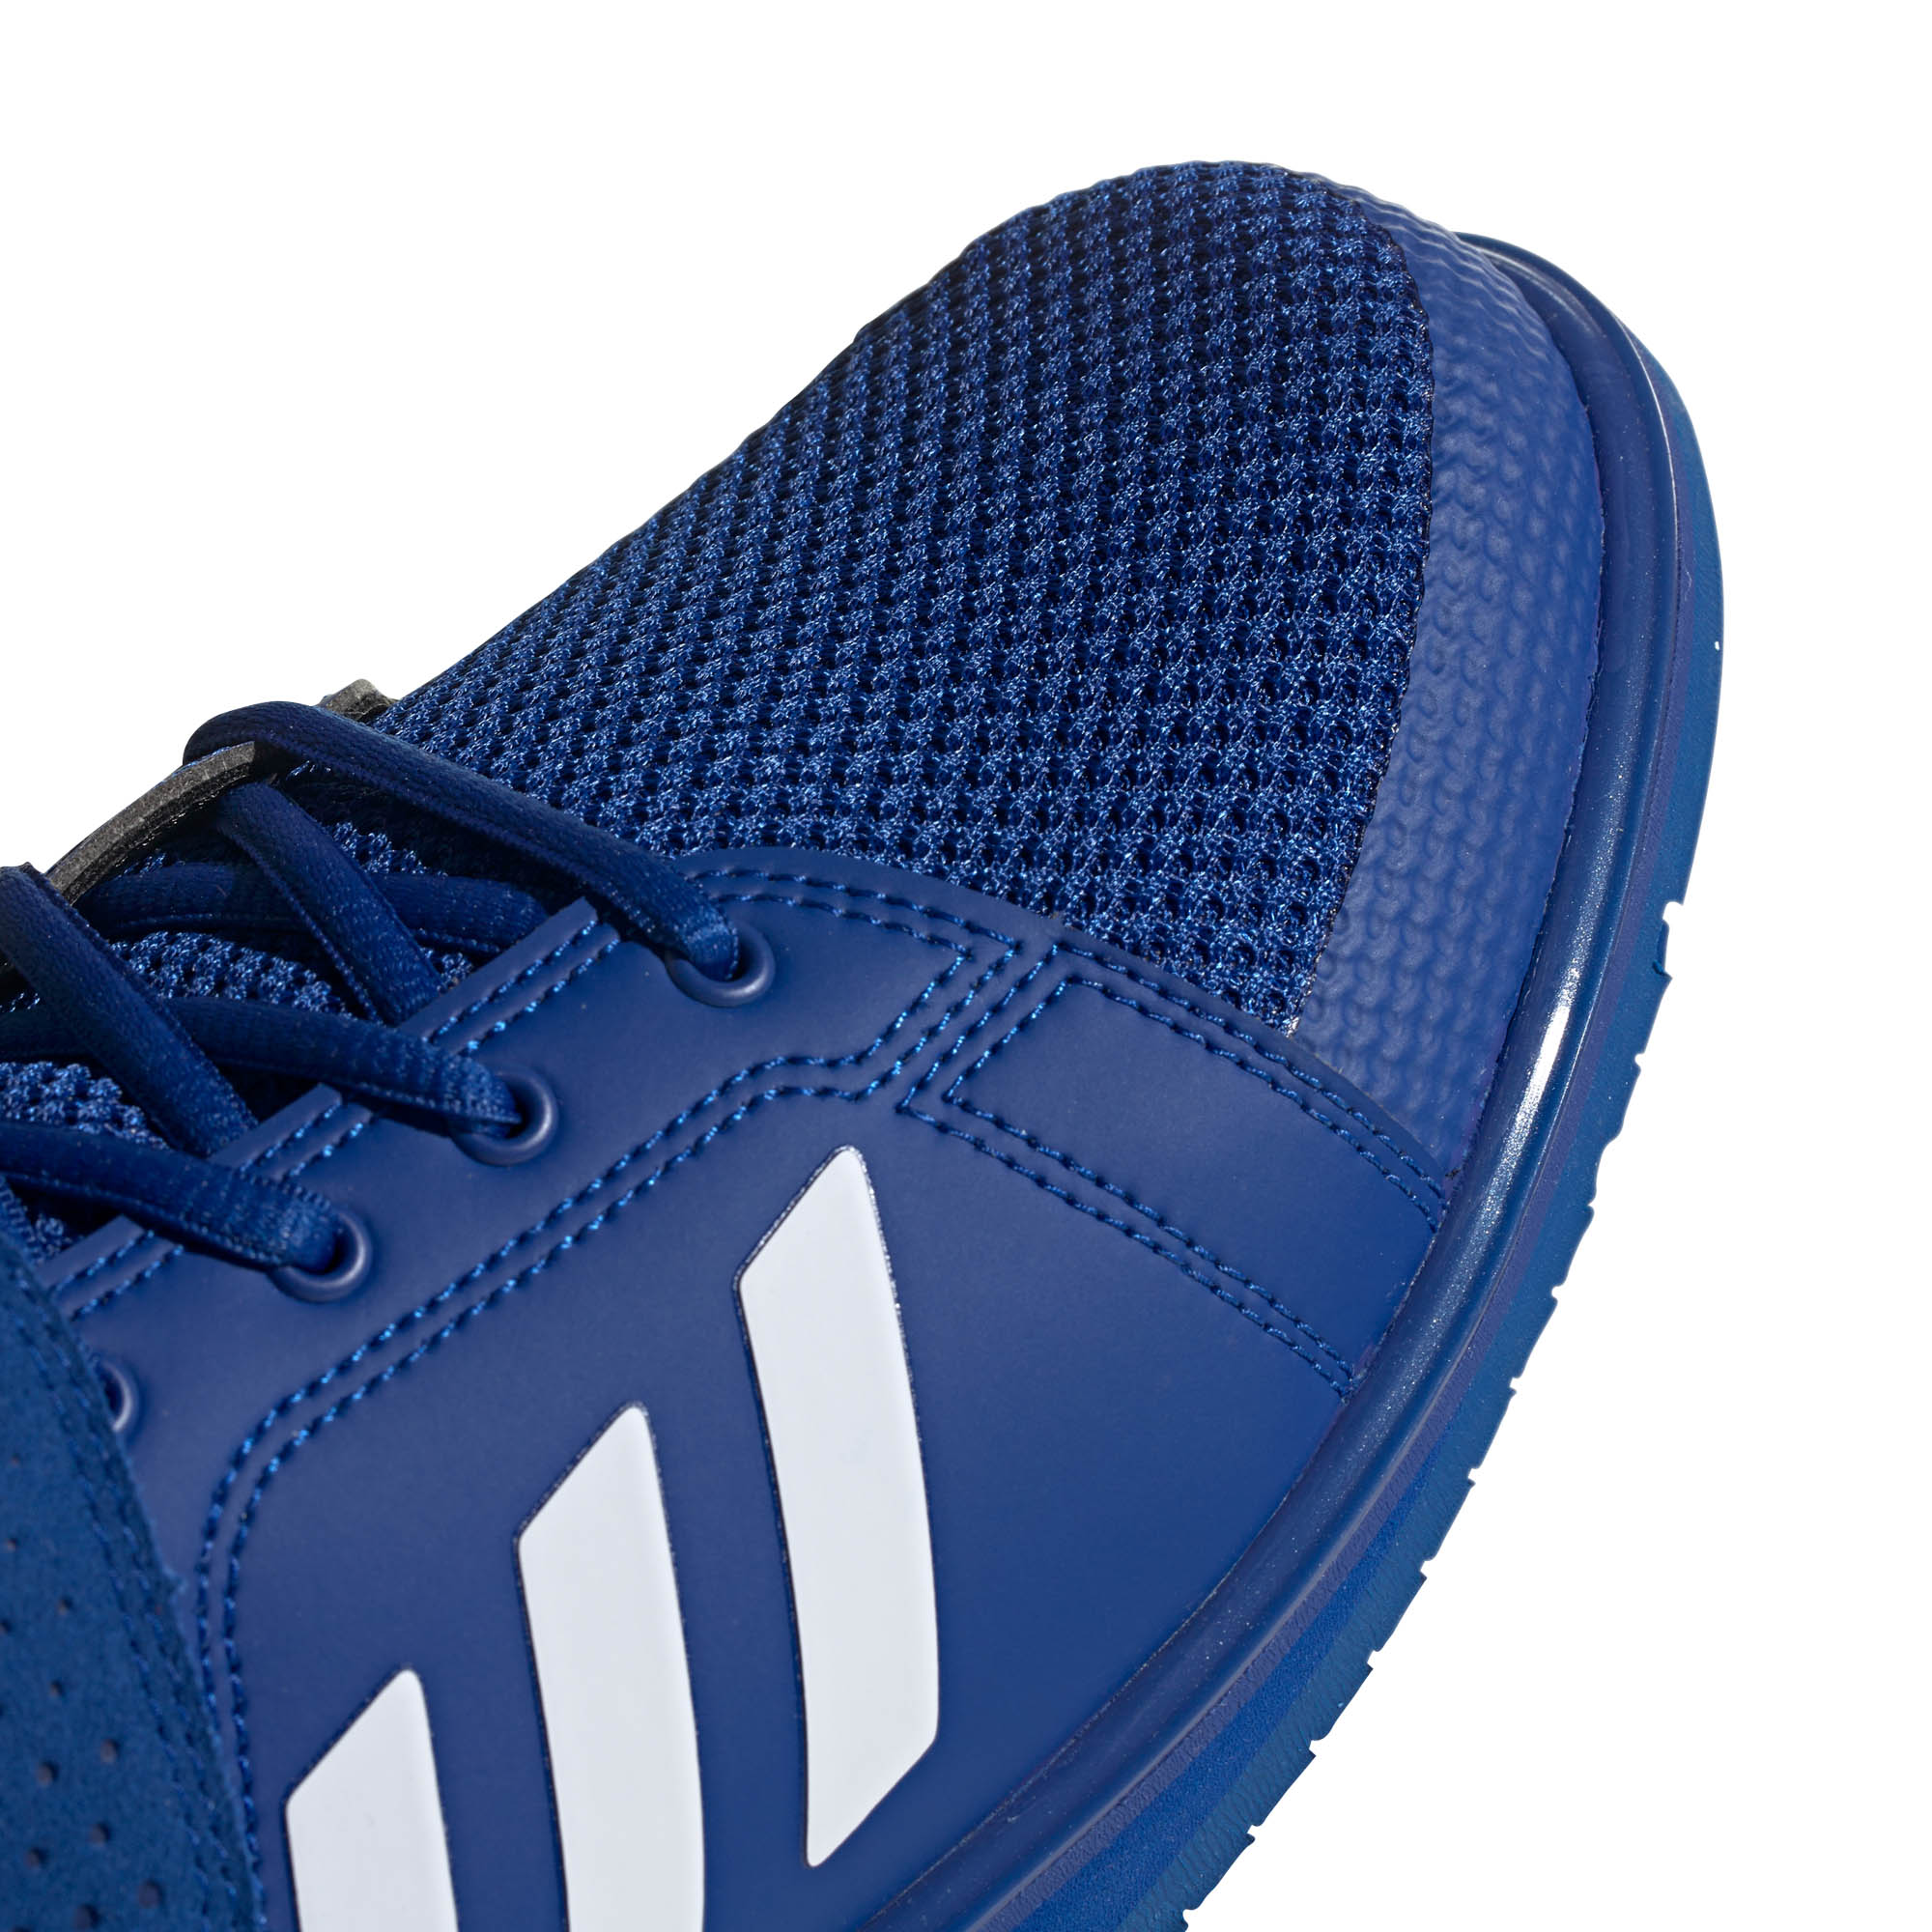 Details about adidas Power Perfect III Mens Weightlifting Powerlifting Shoe Royal Blue